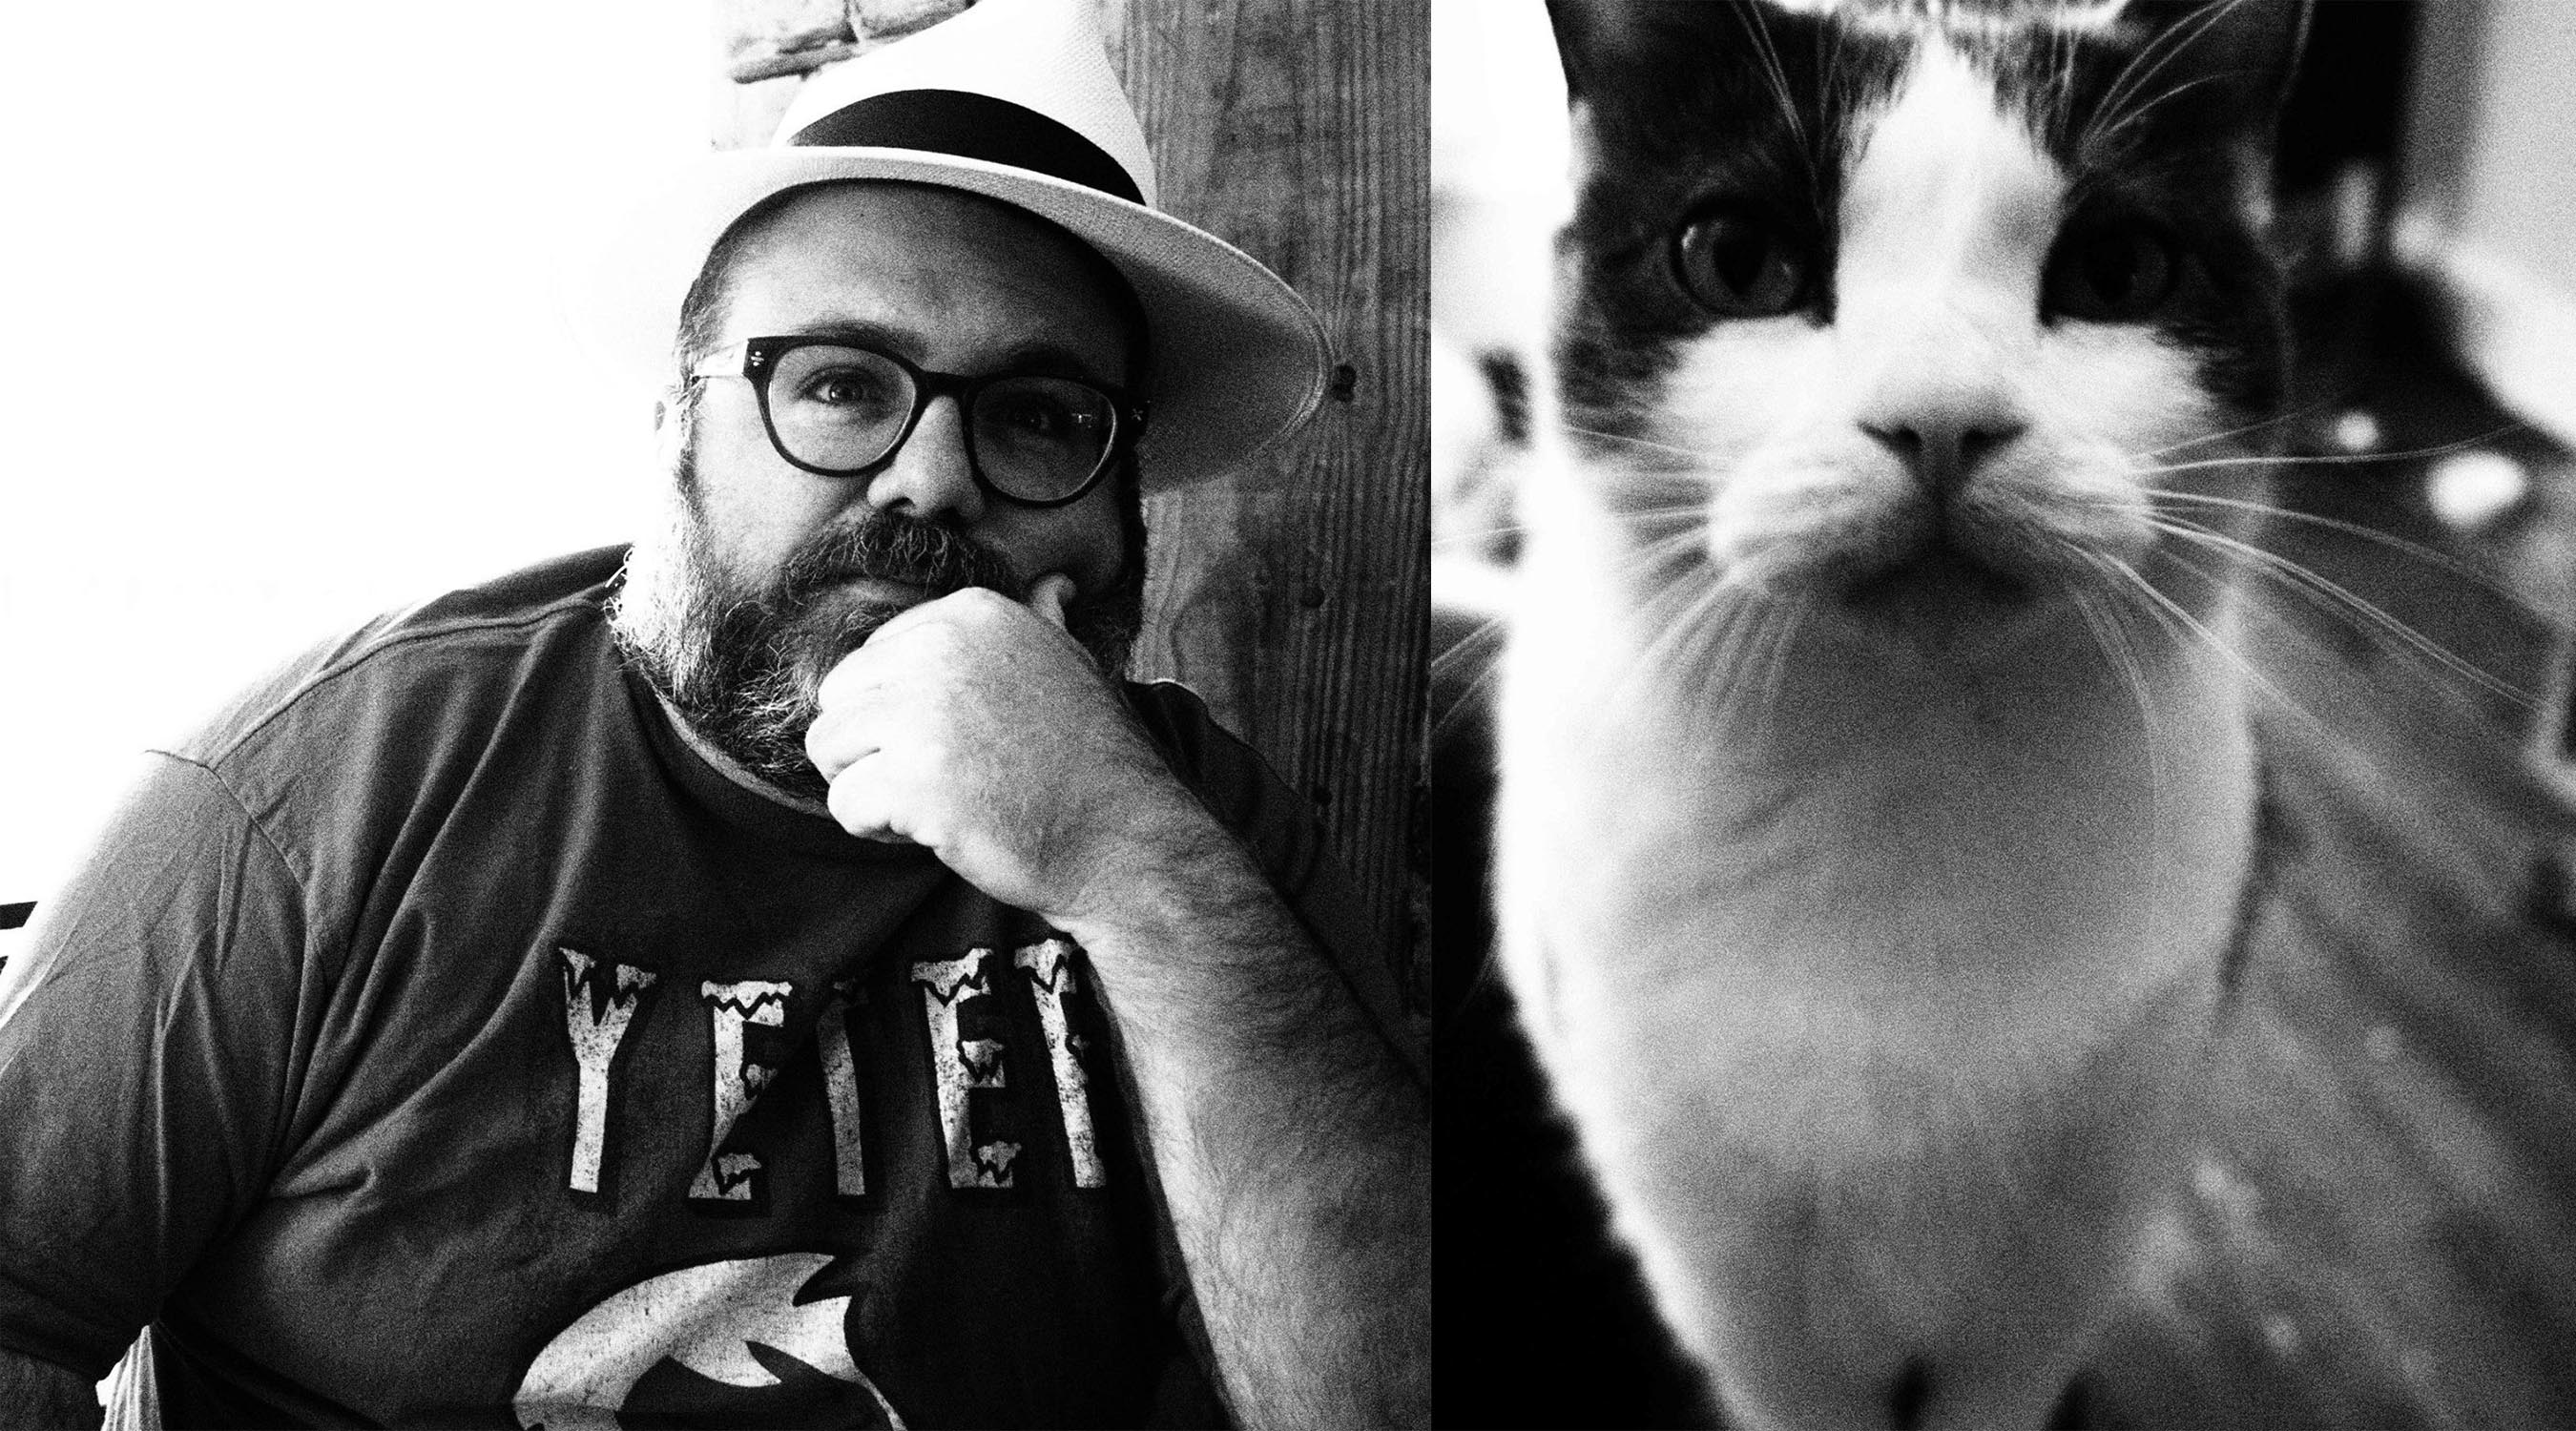 The author (left) and his cat, Joe.